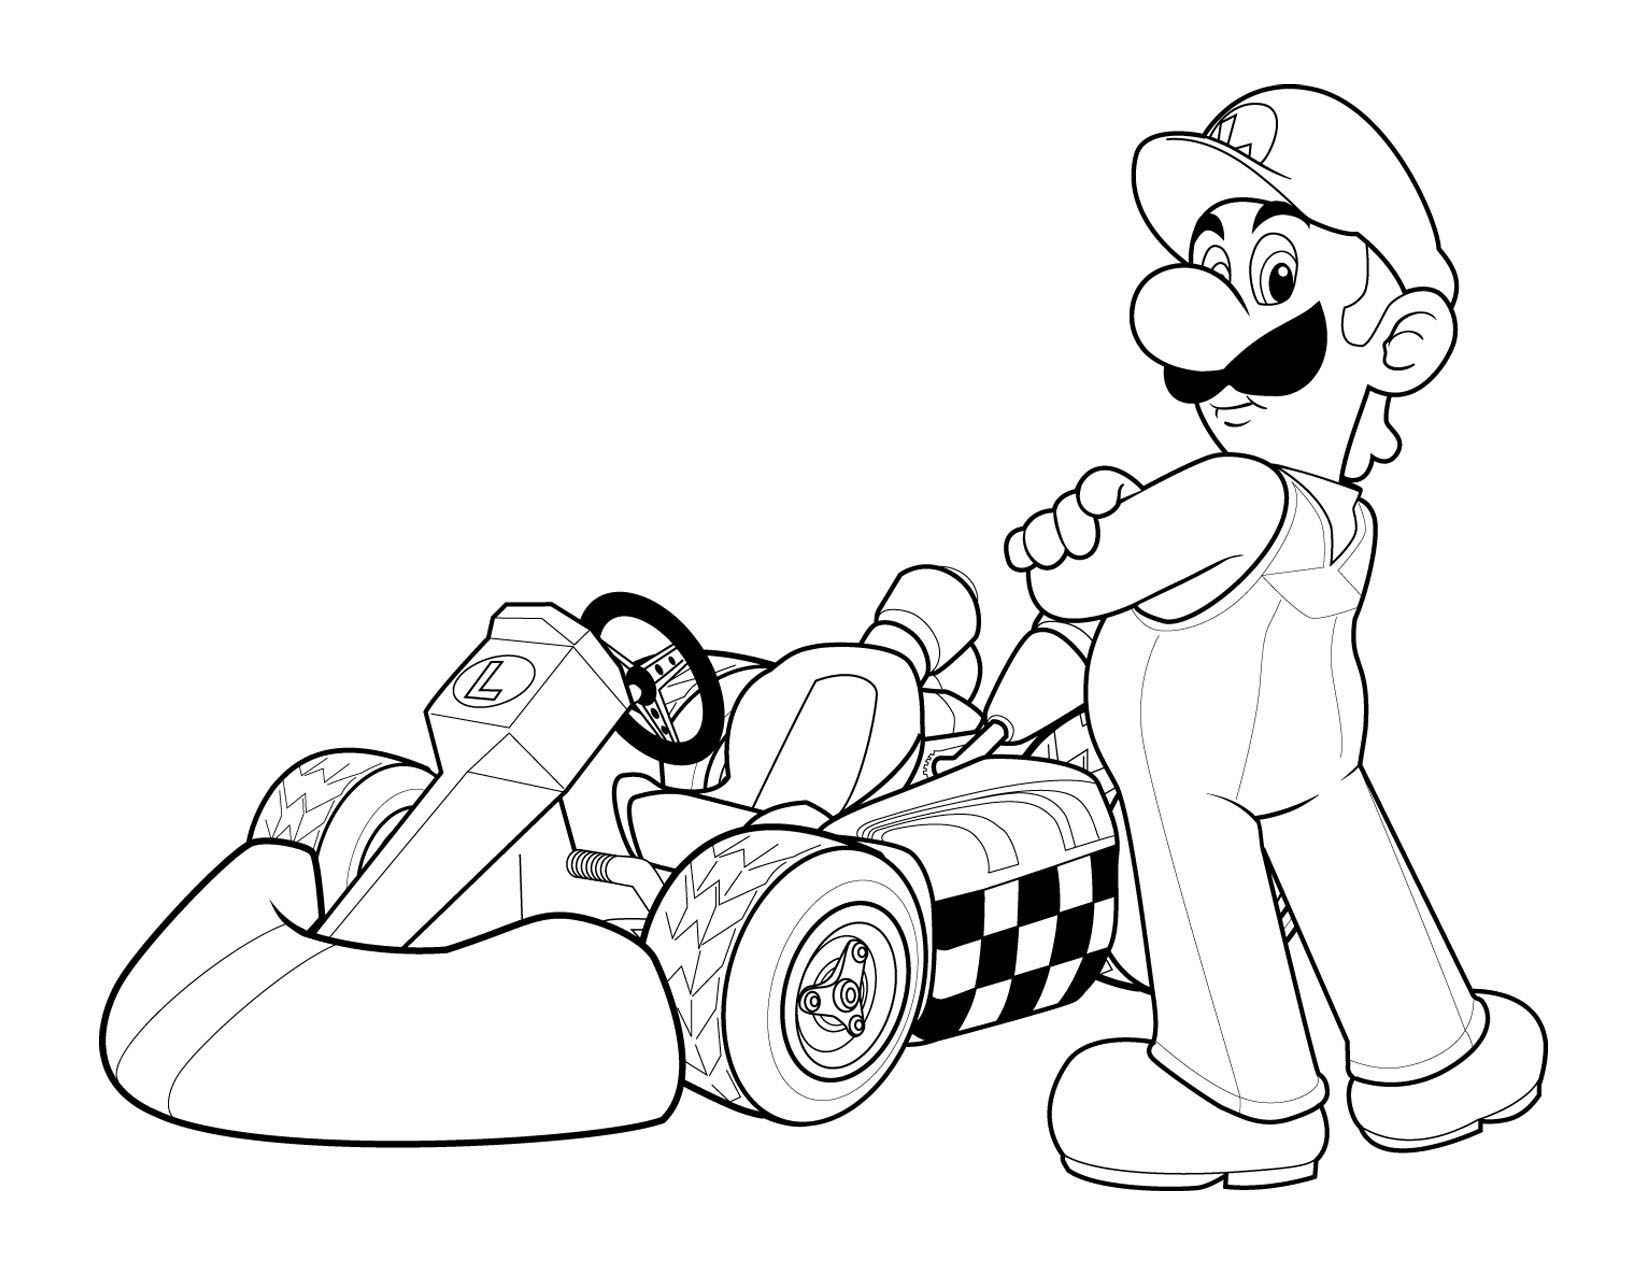 Super Mario Coloring in Pages 2